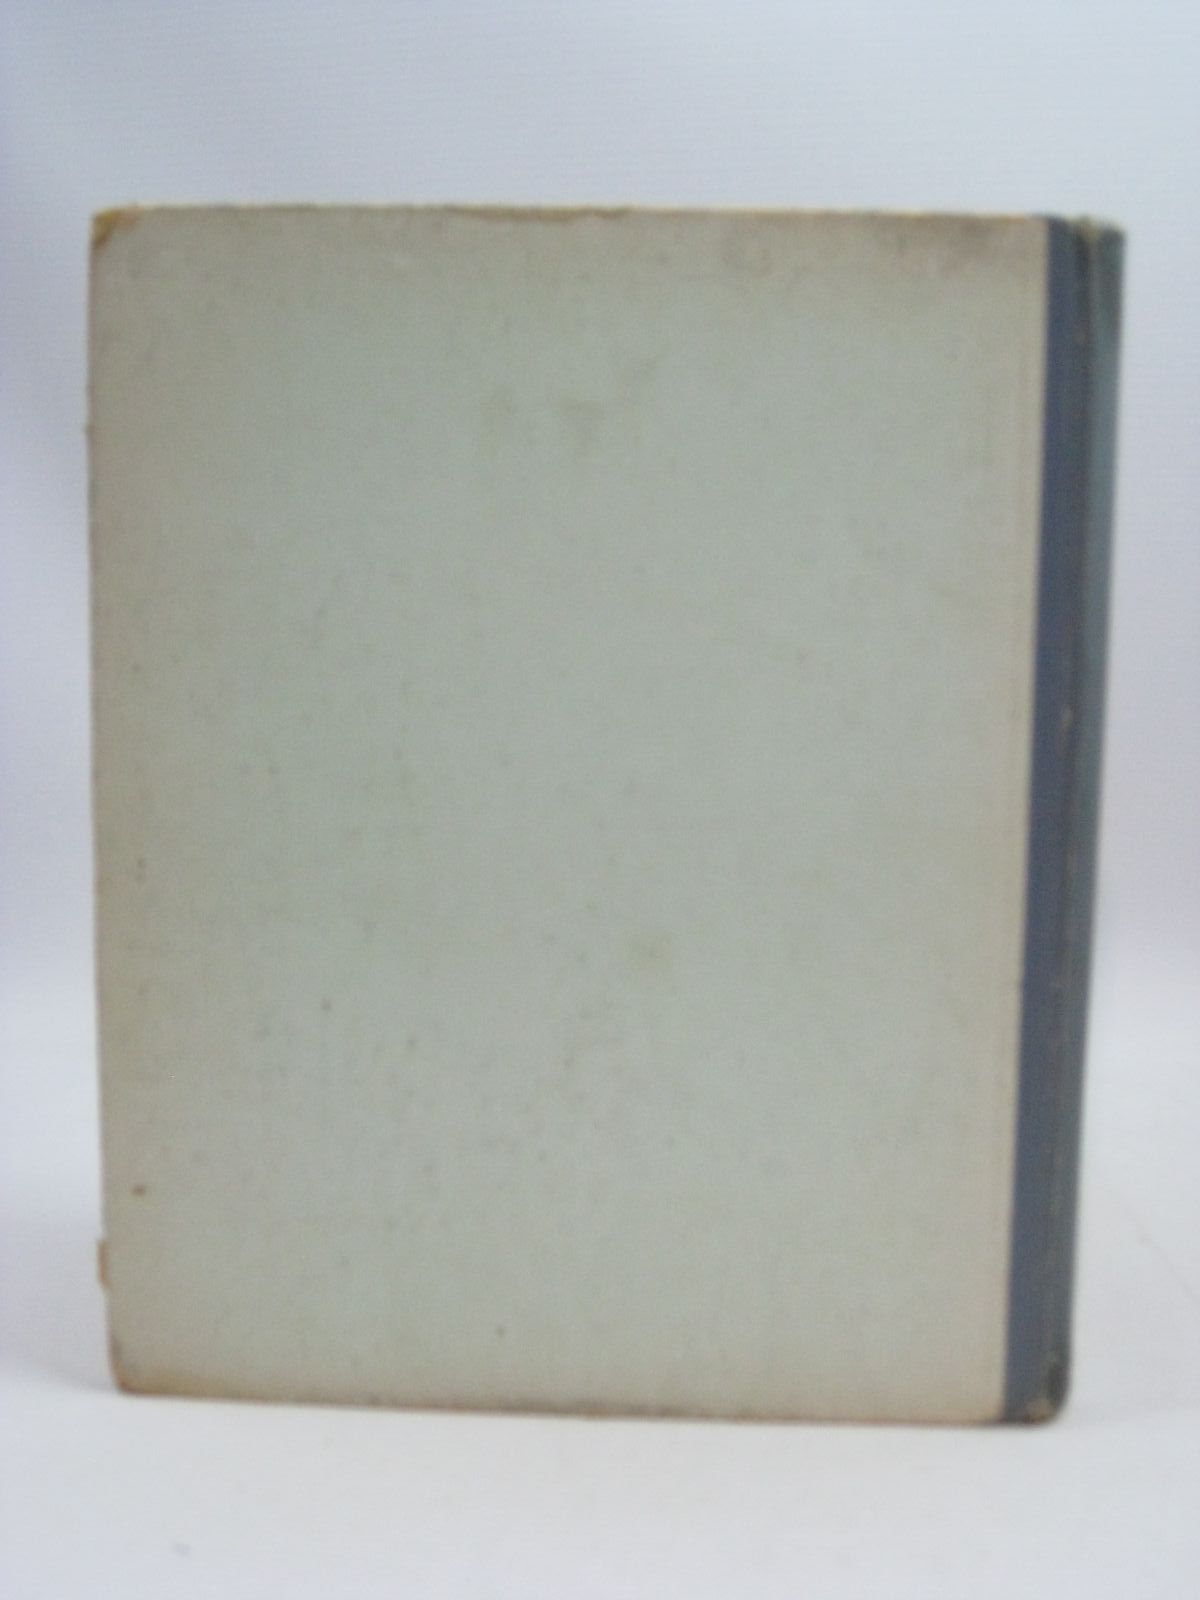 Photo of NISTER'S HOLIDAY ANNUAL - 20TH YEAR written by Fenn, George Manville Nesbit, E. Molesworth, Olive Weedon, L.L. et al, illustrated by Cubitt, Edith A. Jackson, A.E. Nister, Ernest published by Ernest Nister (STOCK CODE: 1404902)  for sale by Stella & Rose's Books